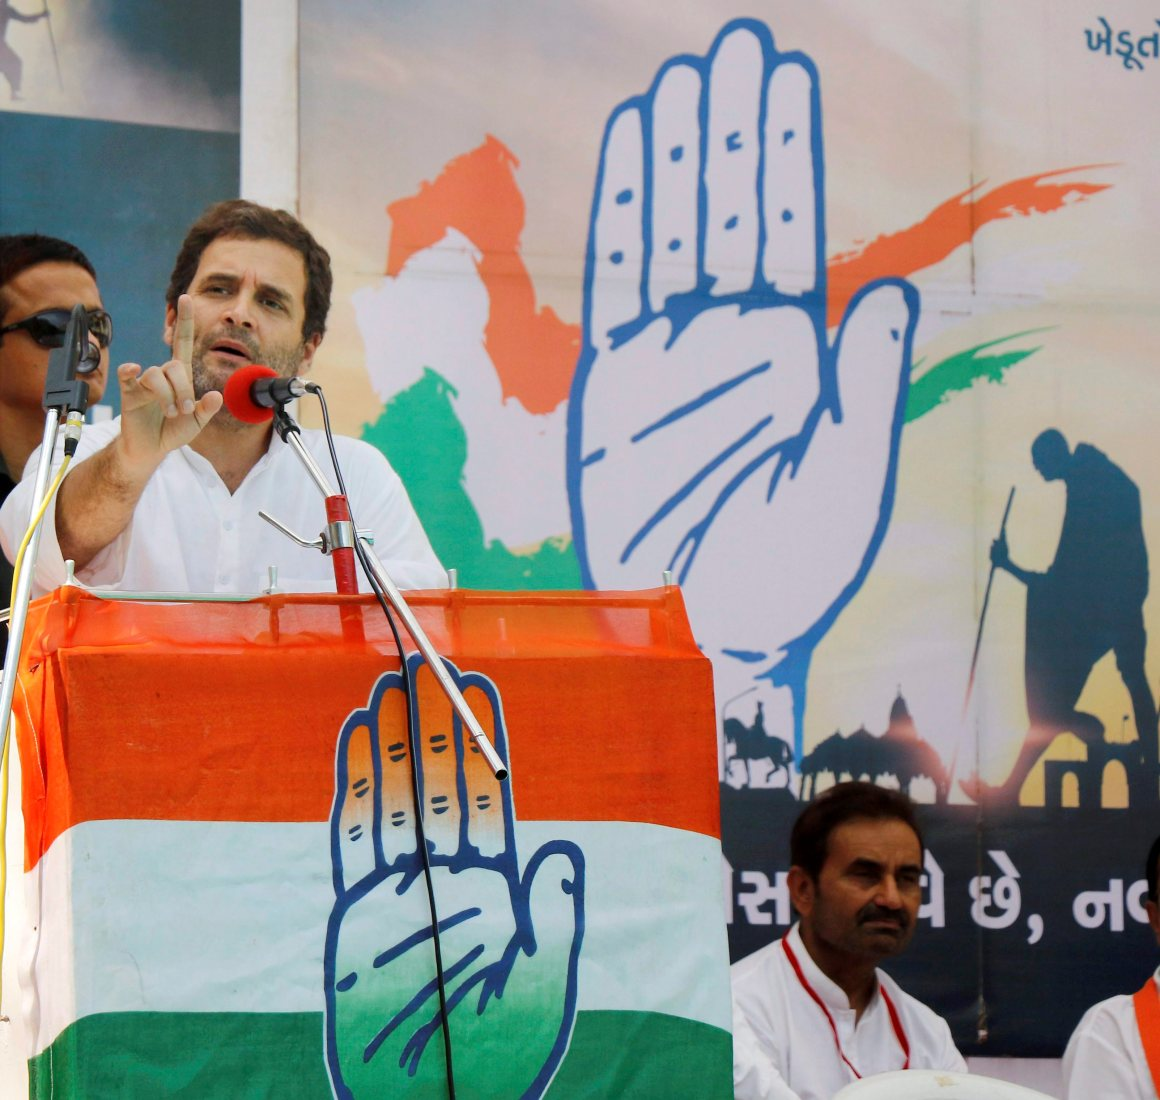 Vadodara: Congress vice-president Rahul Gandhi addresses a public meeting during his road show at Karjan village in Vadodara on Tuesday. PTI Photo (PTI10_10_2017_000070B)